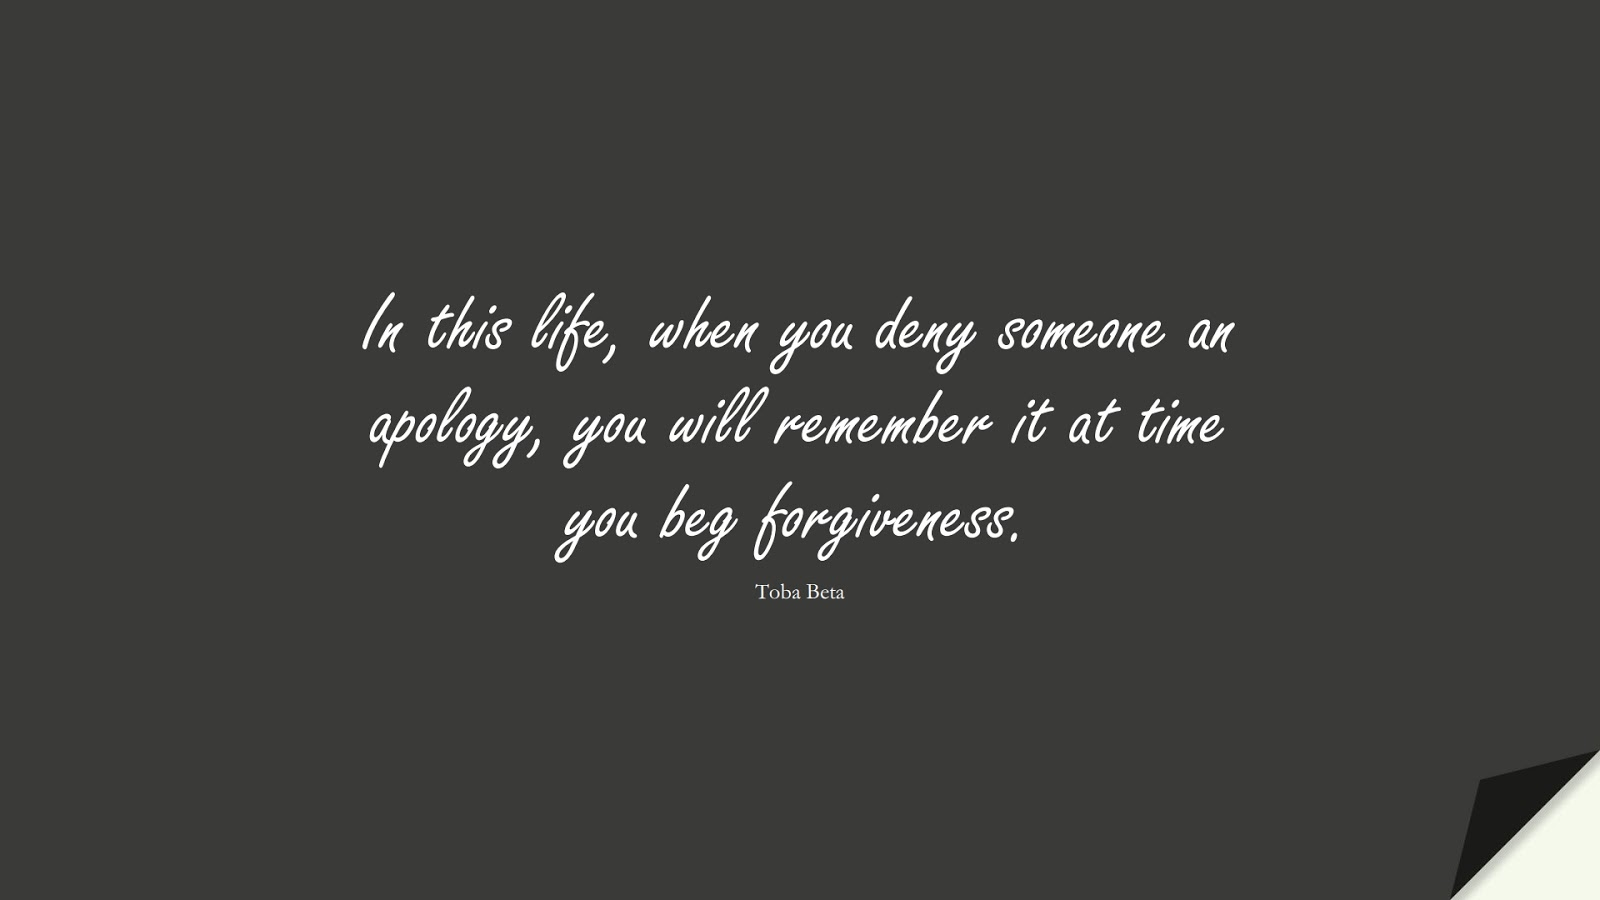 In this life, when you deny someone an apology, you will remember it at time you beg forgiveness. (Toba Beta);  #InspirationalQuotes